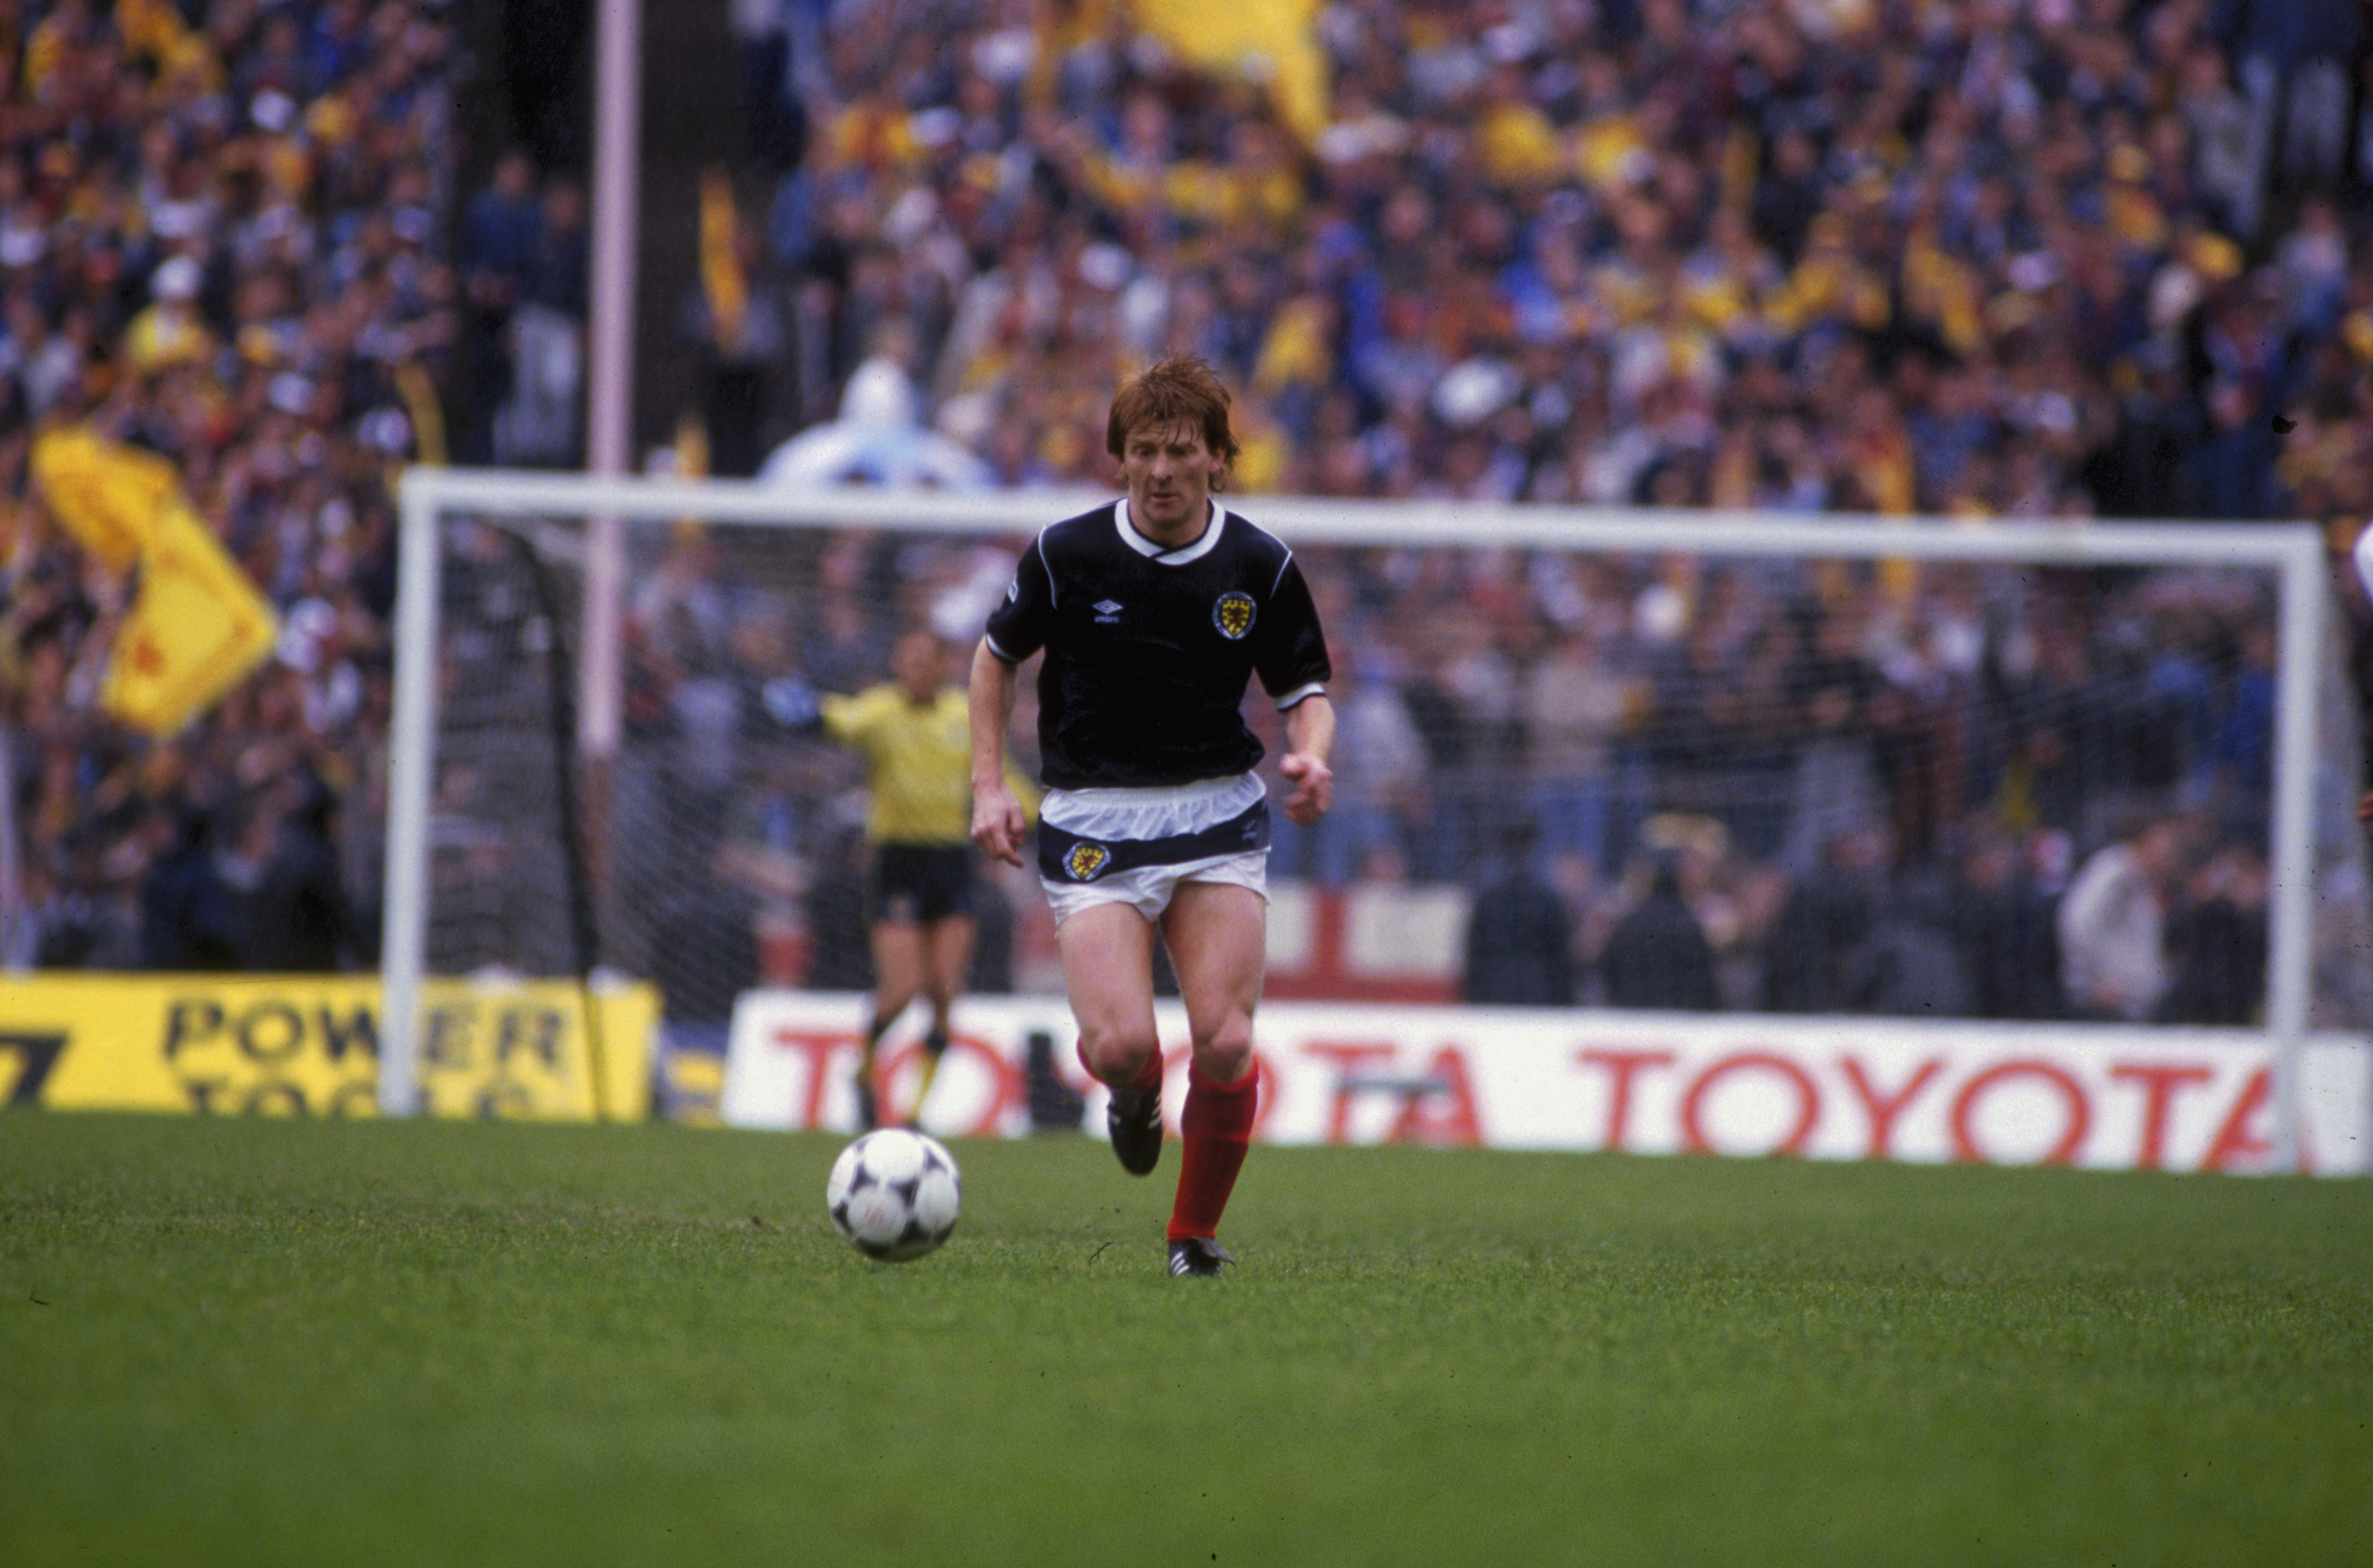 GLASGOW - MAY 25: Gordon Strachan of Scotland runs with the ball during the Rous Cup match between Scotland and England held on May 25, 1985 at Hampden Park, in Glasgow, Scotland. Scotland won the match 1-0. (Photo by Michael King/Getty Images)